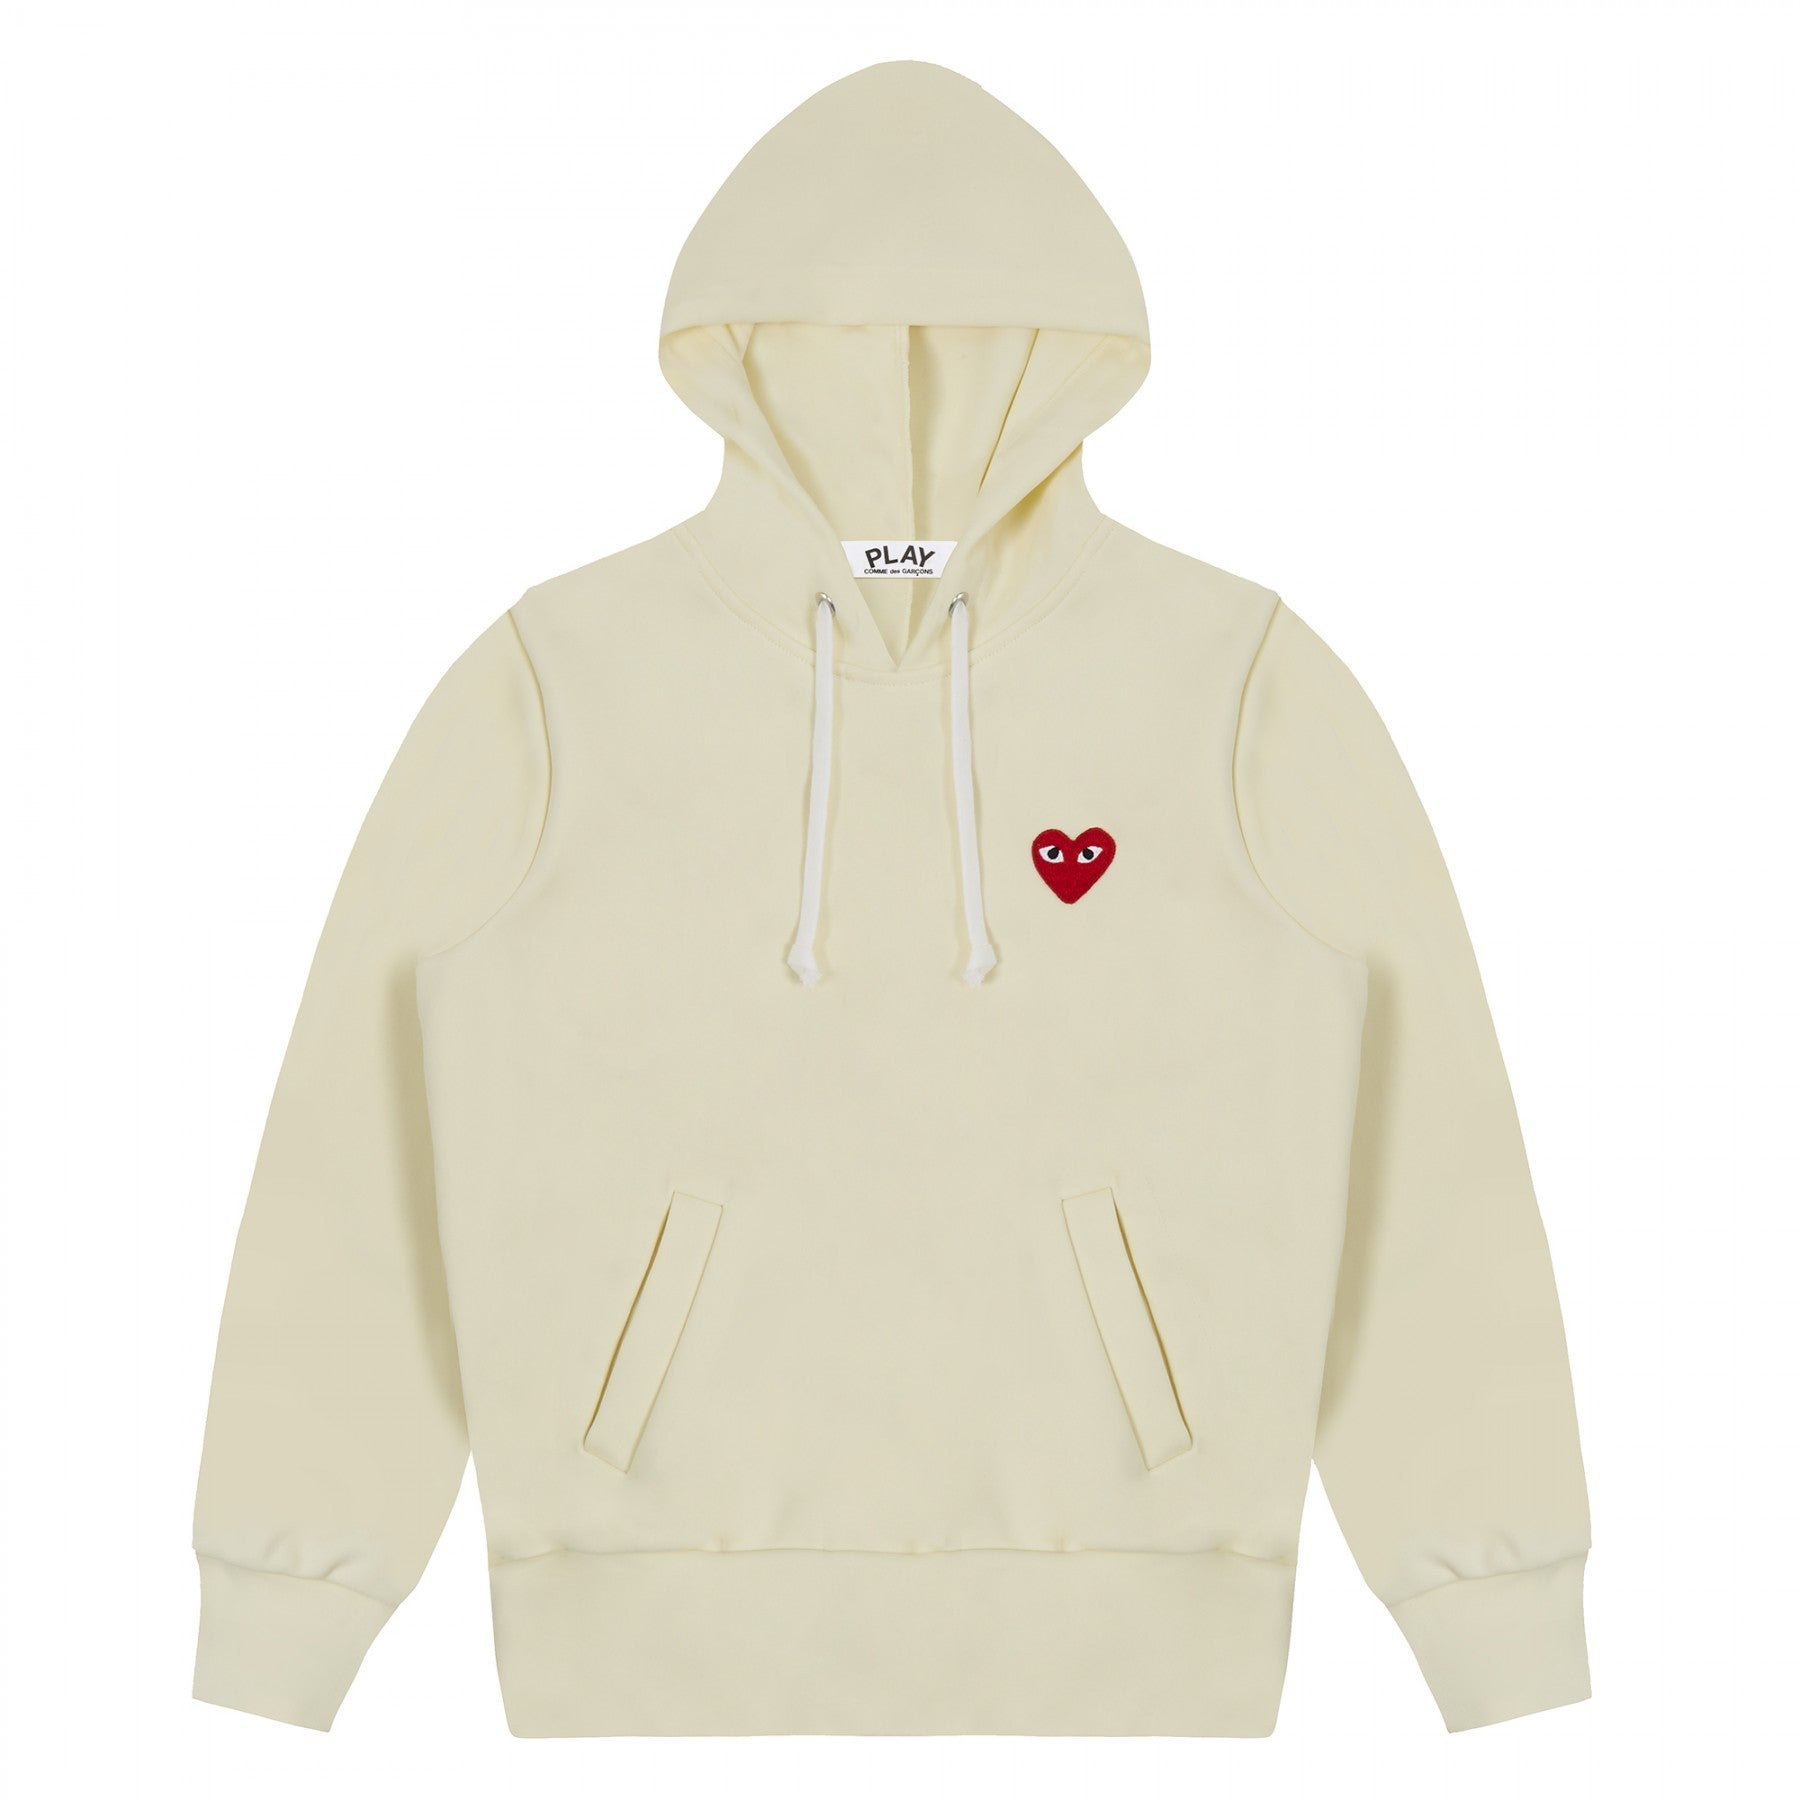 COMME DES GARCONS - PLAY HOODED SWEATSHIRT (IVORY) MENS